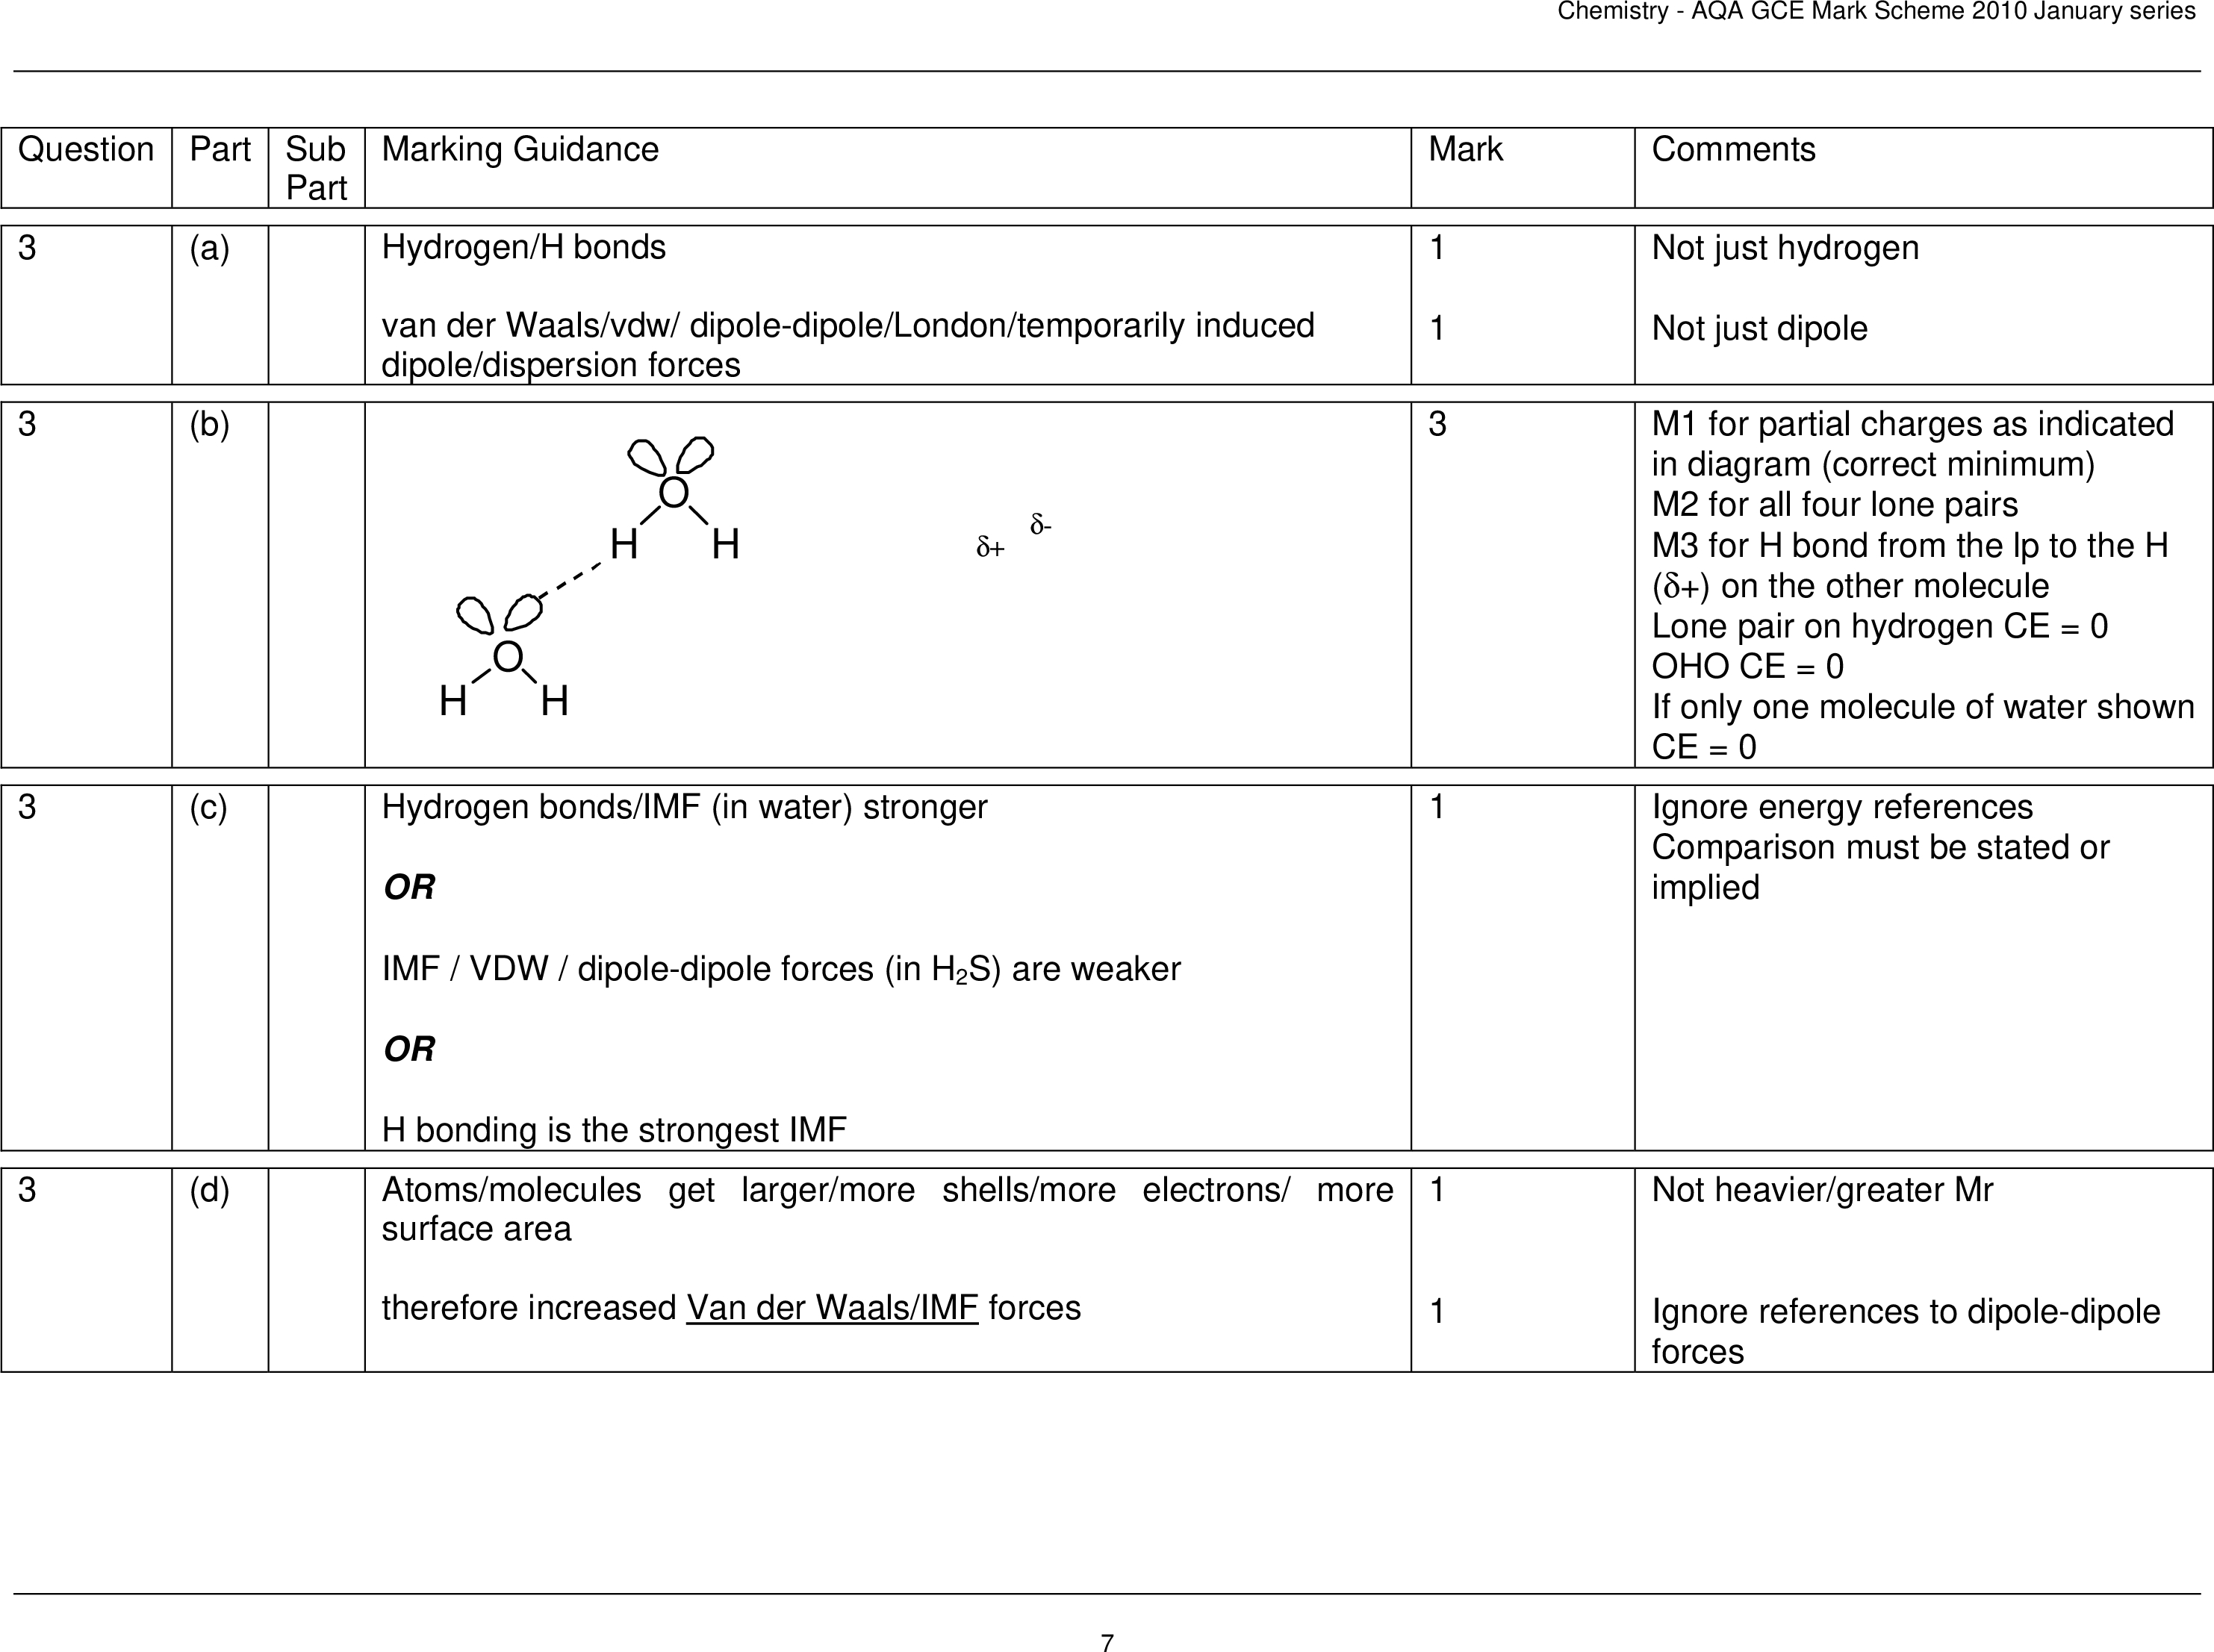 question part sub part a b c d marking guidance mark comments chemistry aqa gce mark scheme january series hydrogen h bonds van der waals vdw dipole dipole london temporarily induced dipole dispersion forces hydrogen bonds imf in water stronger or imf vdw dipole dipole forces in h s are weaker or h bonding is the strongest imf atoms molecules get larger more shells more electrons more surface area therefore increased van der waals imf forces not just hydrogen not just dipole m for partial charges as indicated in diagram correct minimum m for all four lone pairs m for h bond from the lp to the h on the other molecule lone pair on hydrogen ce oho ce if only one molecule of water shown ce ignore energy references comparison must be stated or implied not heavier greater mr ignore references to dipole dipole forces e dative covalent coordinate lone pair both electrons two electrons on o h donated to h or pair both electrons come from o h f ionic oppositely charged ions and ions or particles ions attract strongly or strong many ionic bonds must be broken chemistry aqa gce mark scheme january series if not dative coordinate ce if covalent or blank read on explanation of a coordinate bond specific to oxygen or water required not just h attracted to lone pair since that is nearer to a h bond if not ionic ce atoms or molecules loses m and m s loses m reference to imf loses m and m